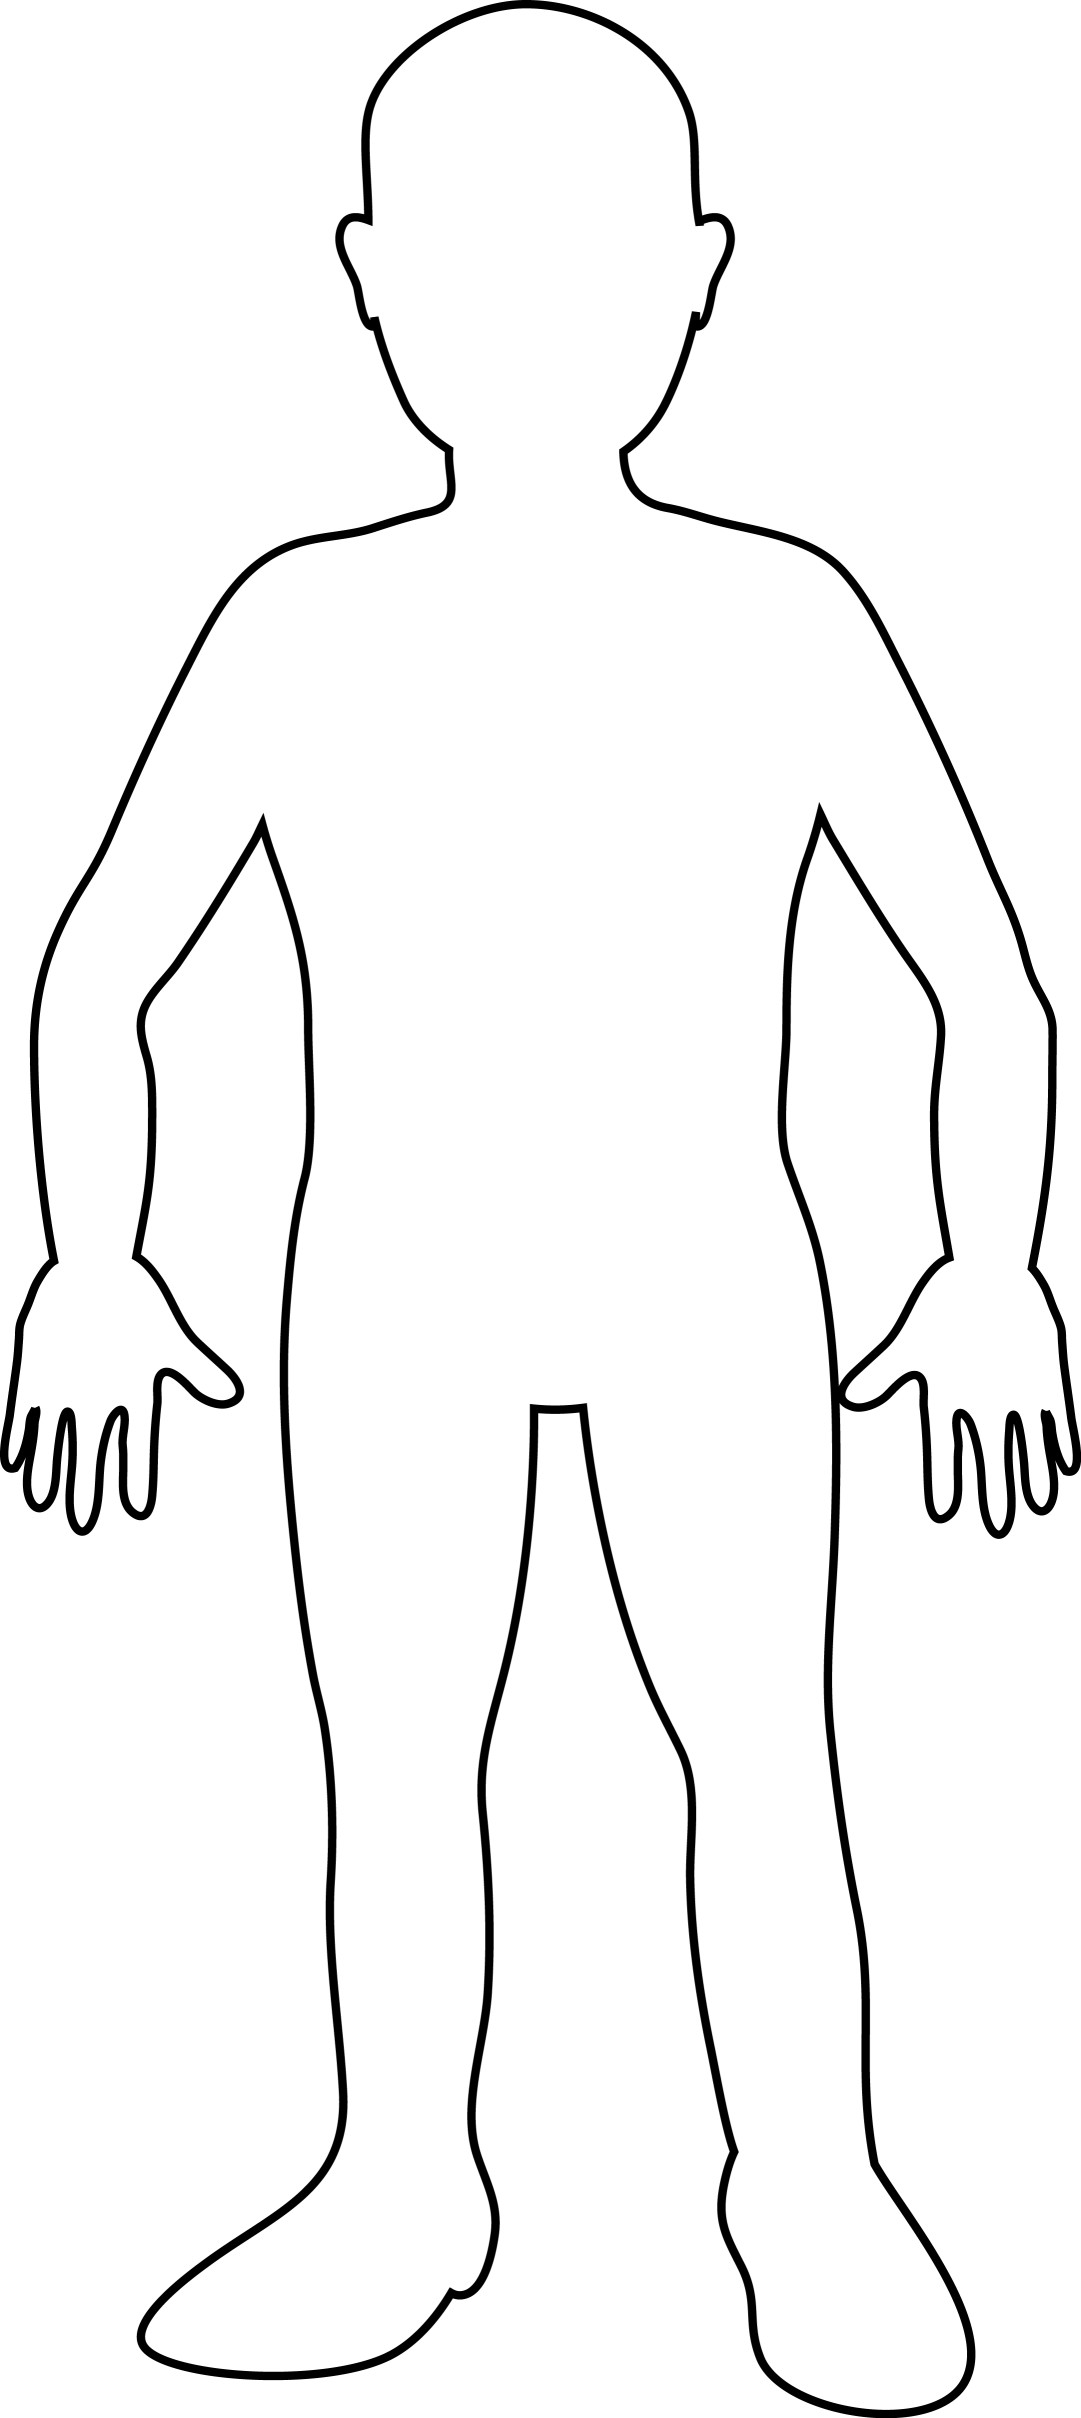 Human Body Drawing Template